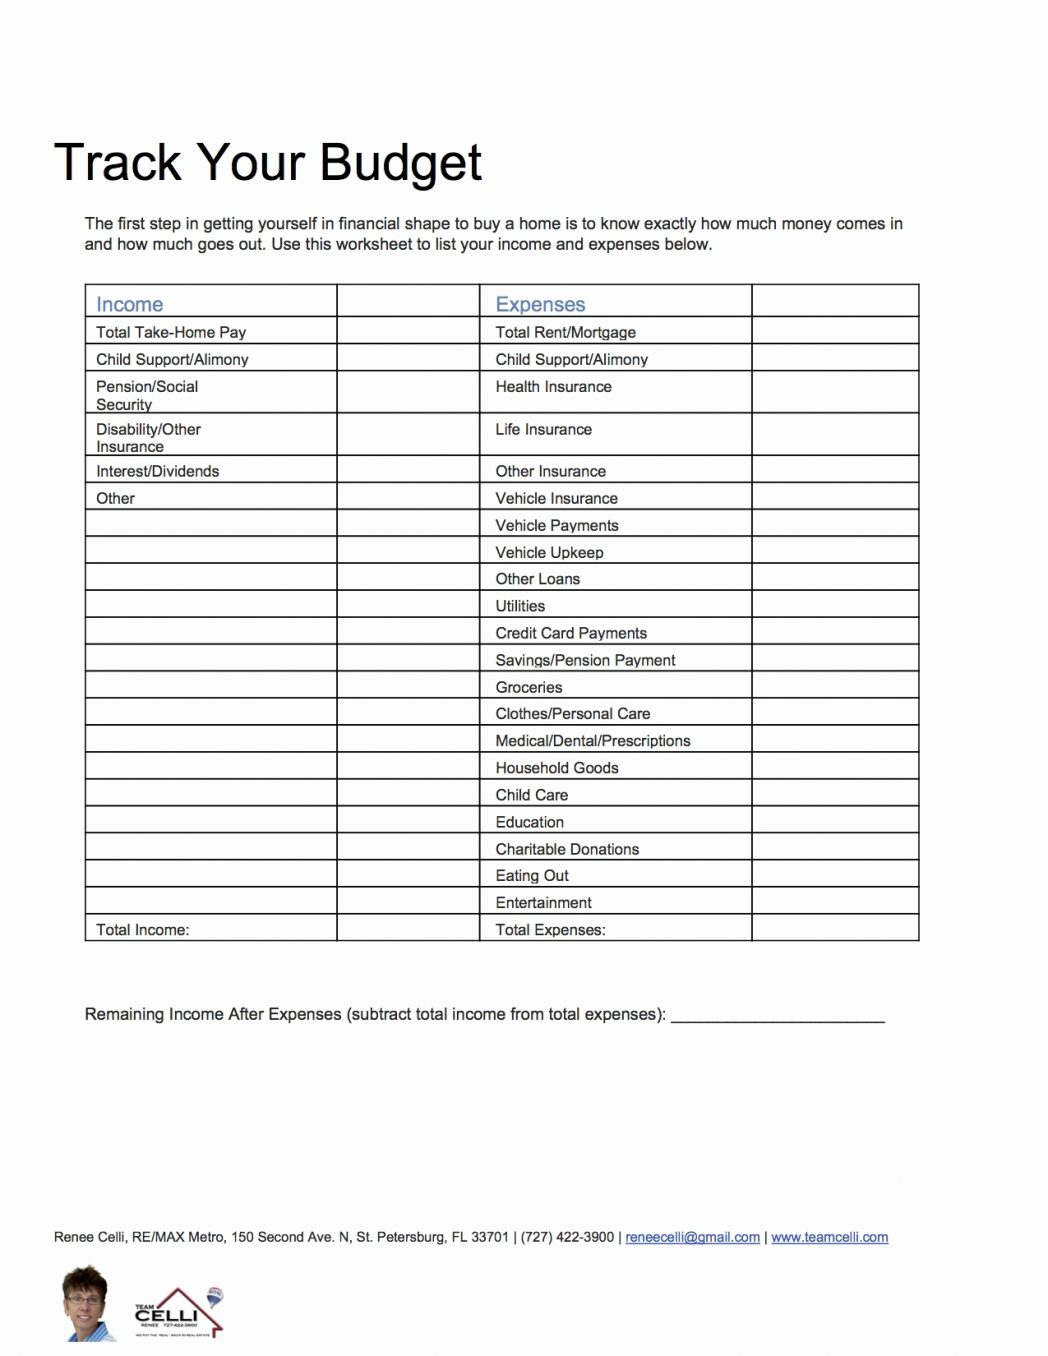 Home Buying Spreadsheet Template Within 10 Unique Home Buying Comparison Spreadsheet Nswallpaper Com Library